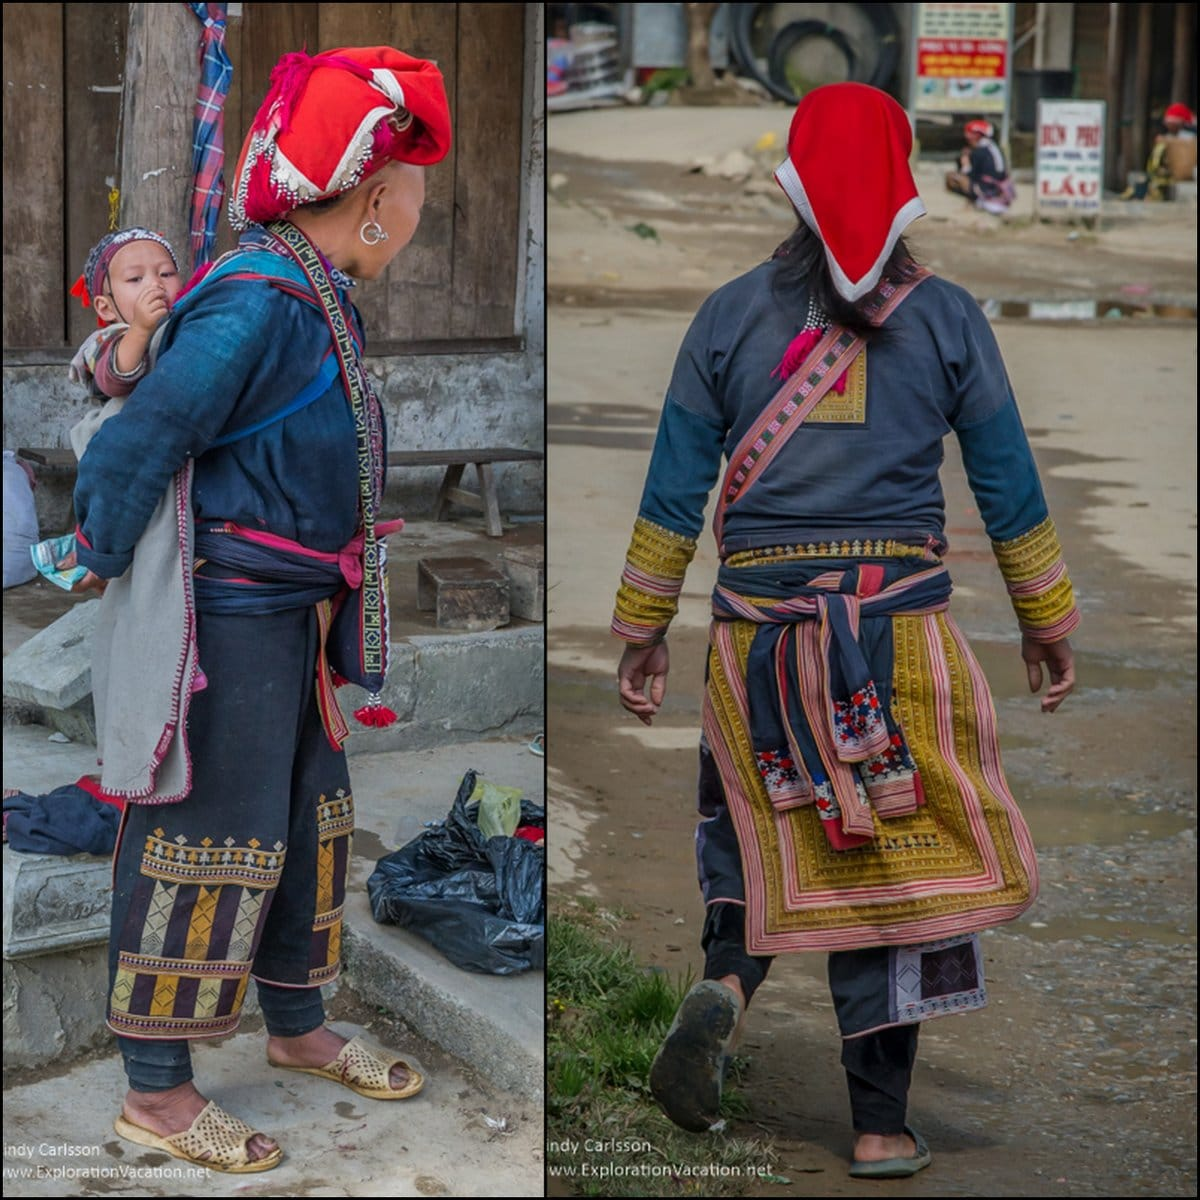 Red Dao women TaPhin village